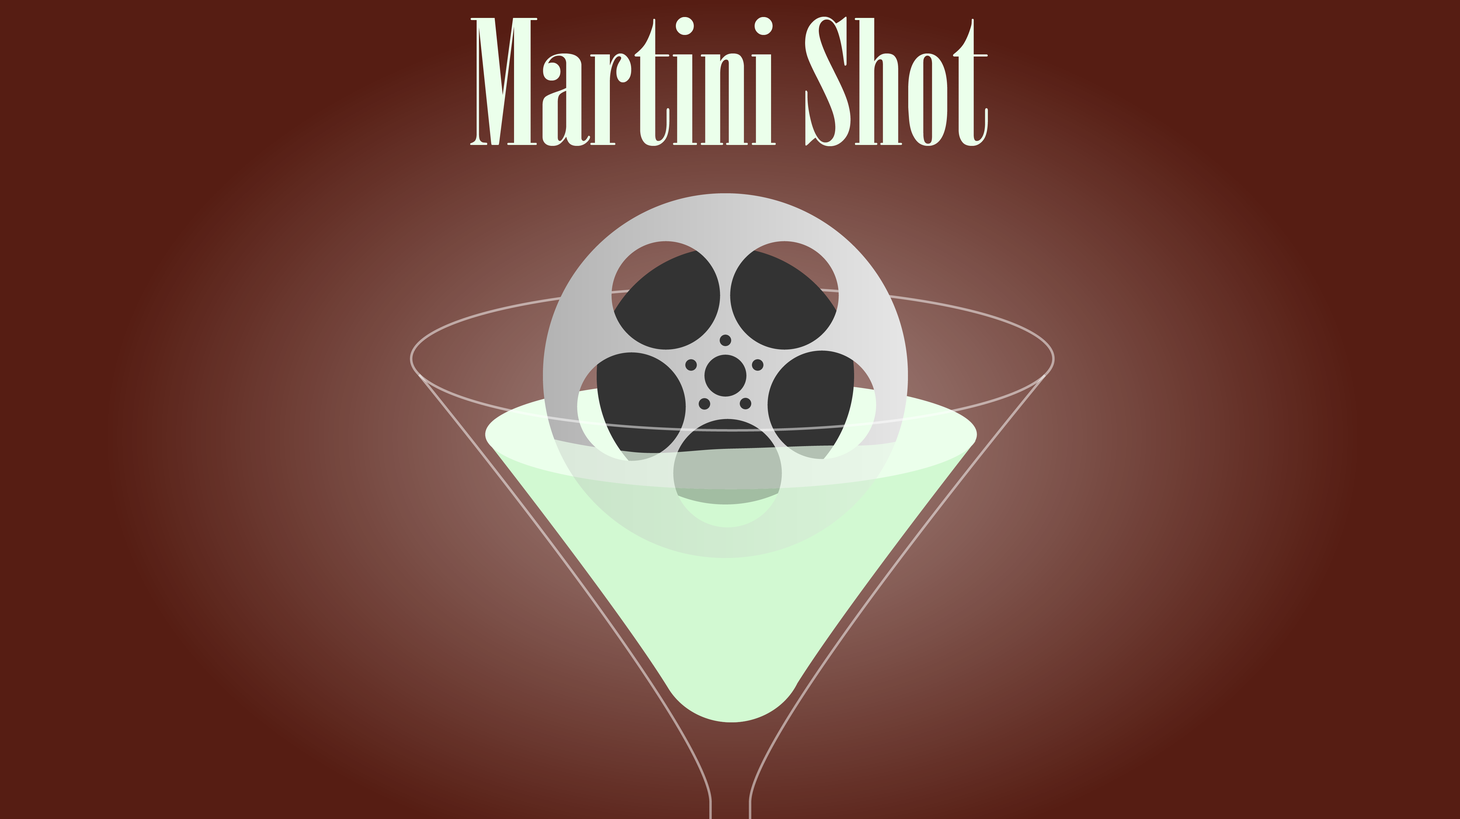 This is Rob Long, and on today's Martini Shot my washing machine breaks down and I fix it, sort of, and it all makes me think about Disney Plus. They connect, I promise.